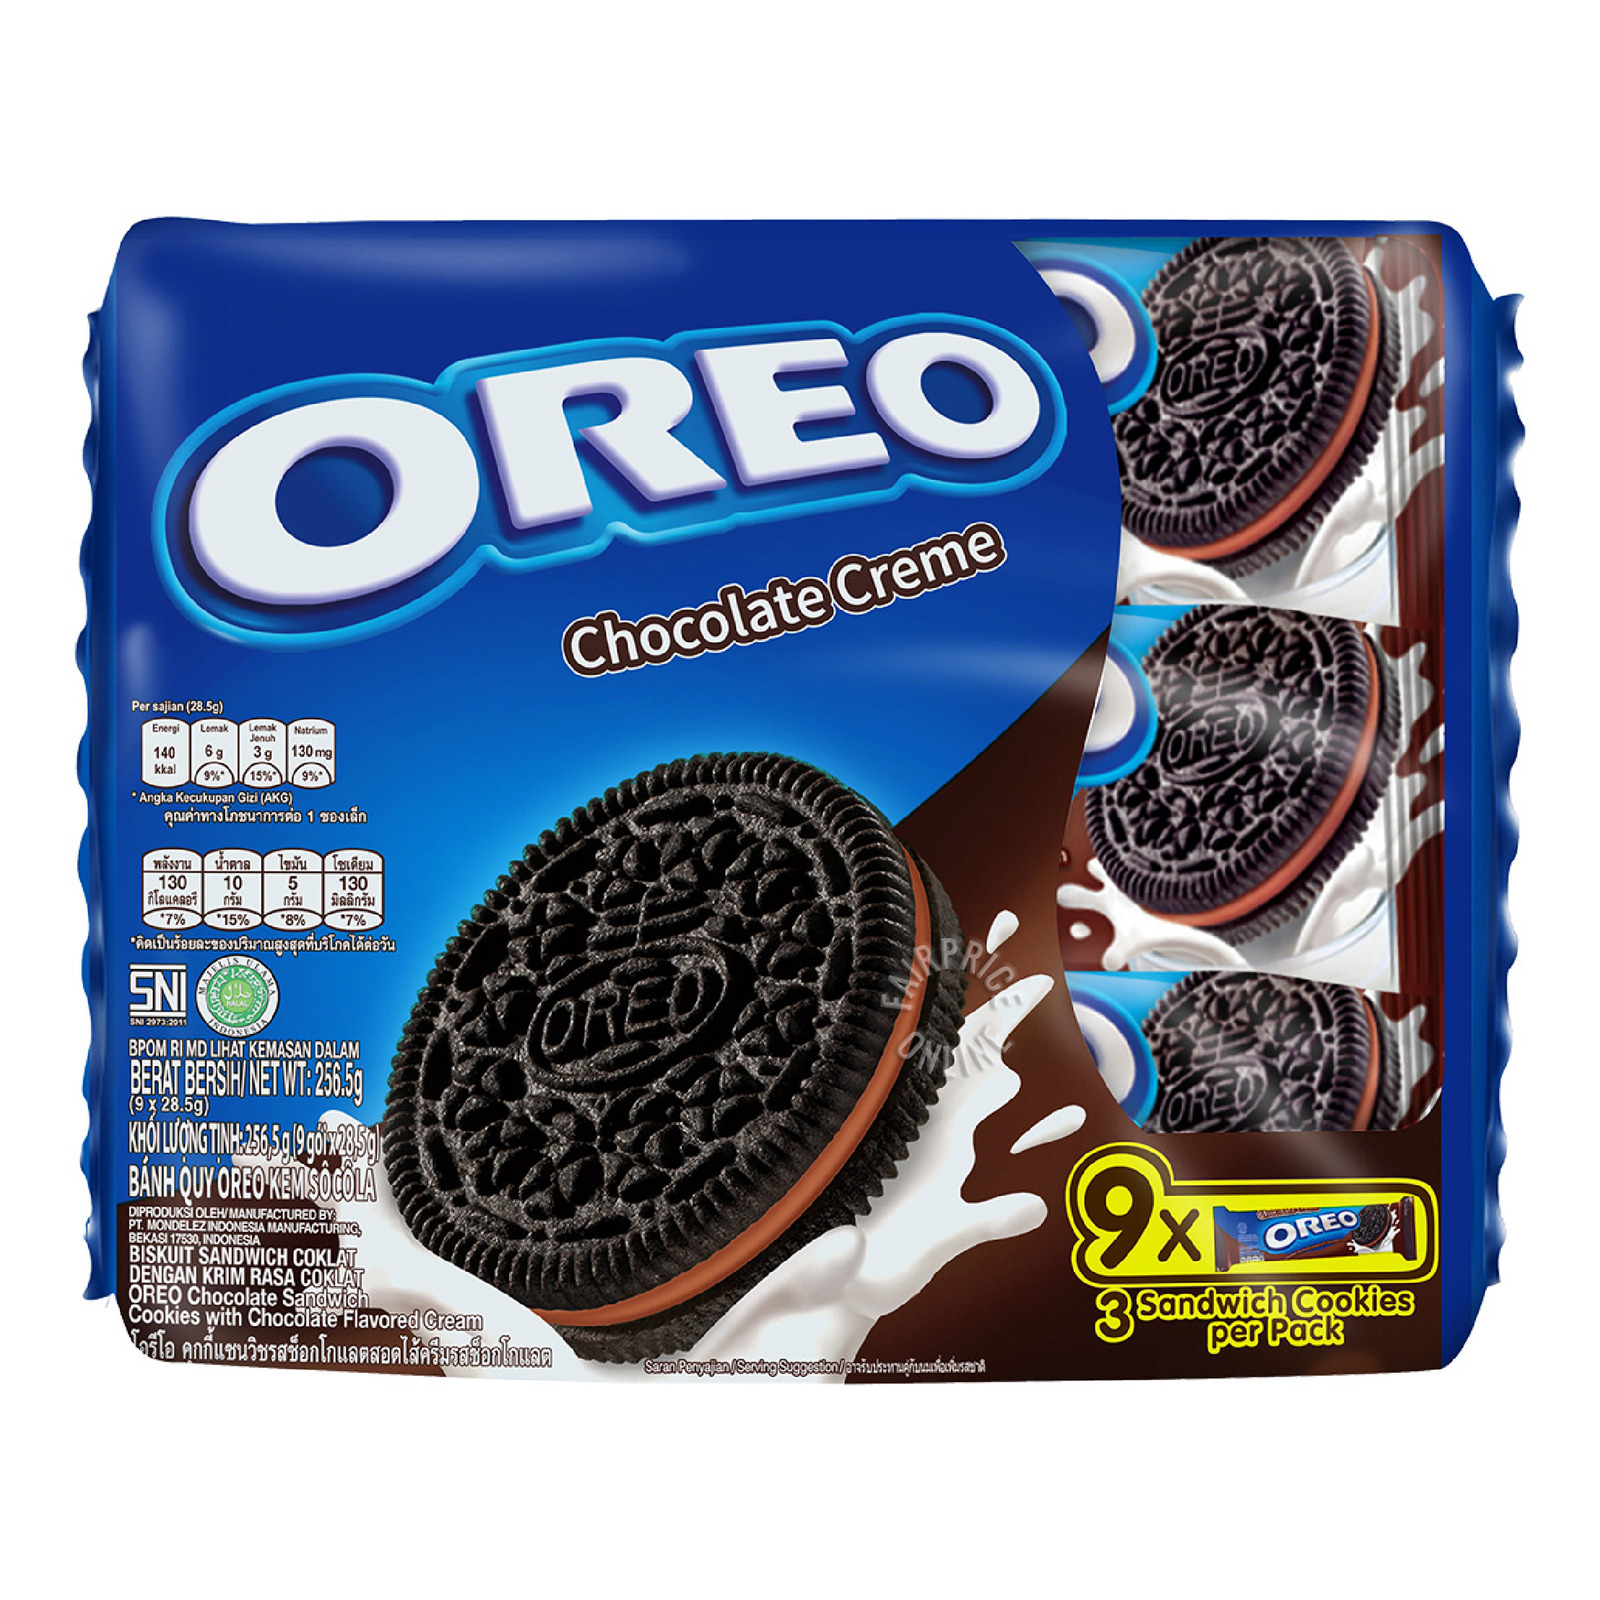 Oreo Cookie Sandwich Biscuit - Chocolate